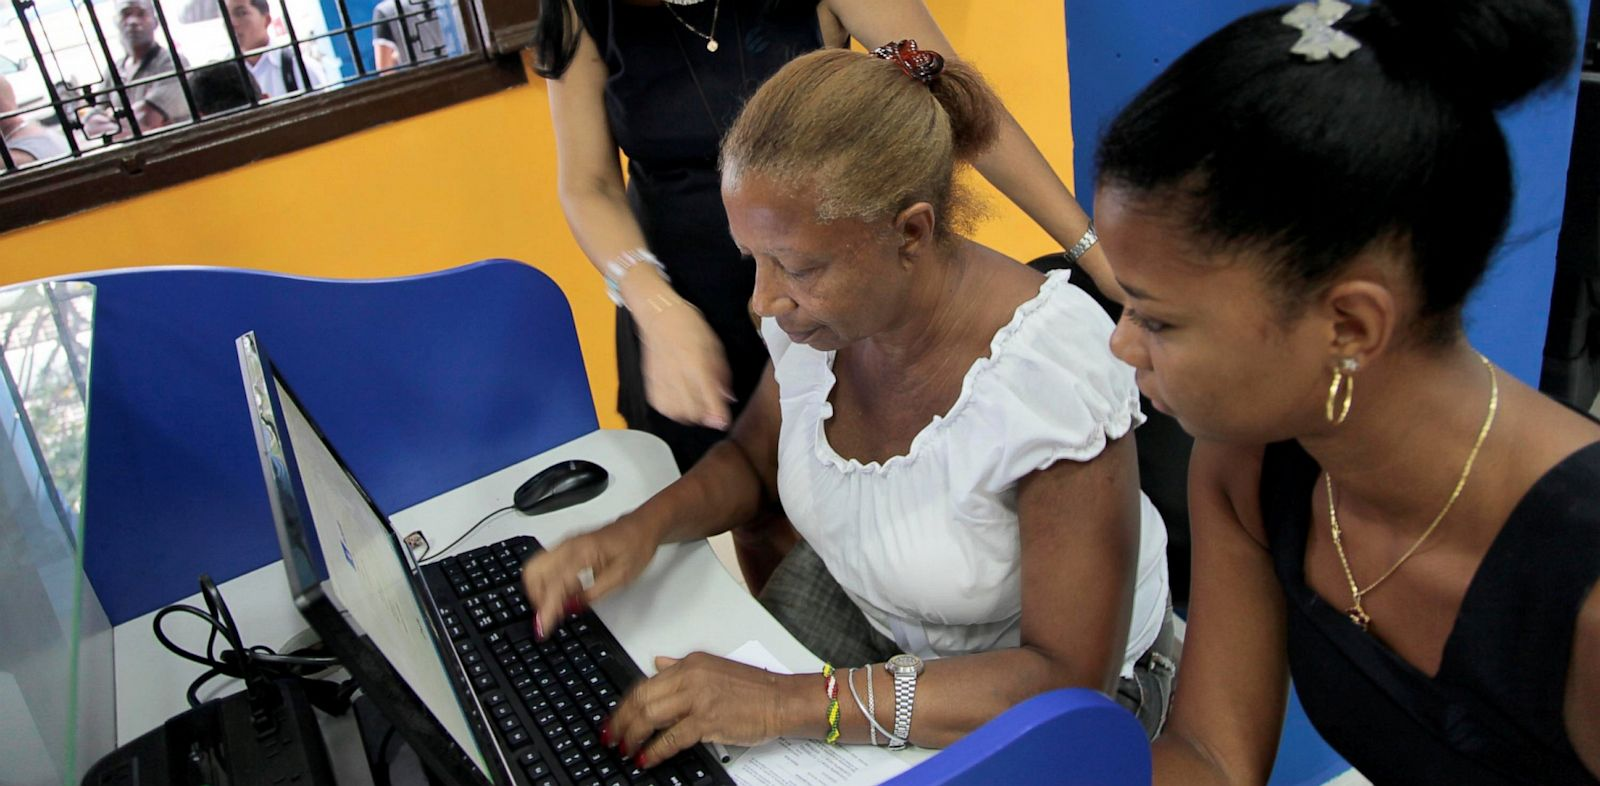 PHOTO: An employee of ETECSA (Cuban telecommunications company) helps a client at a cyber place in Havana on June 4, 2013.